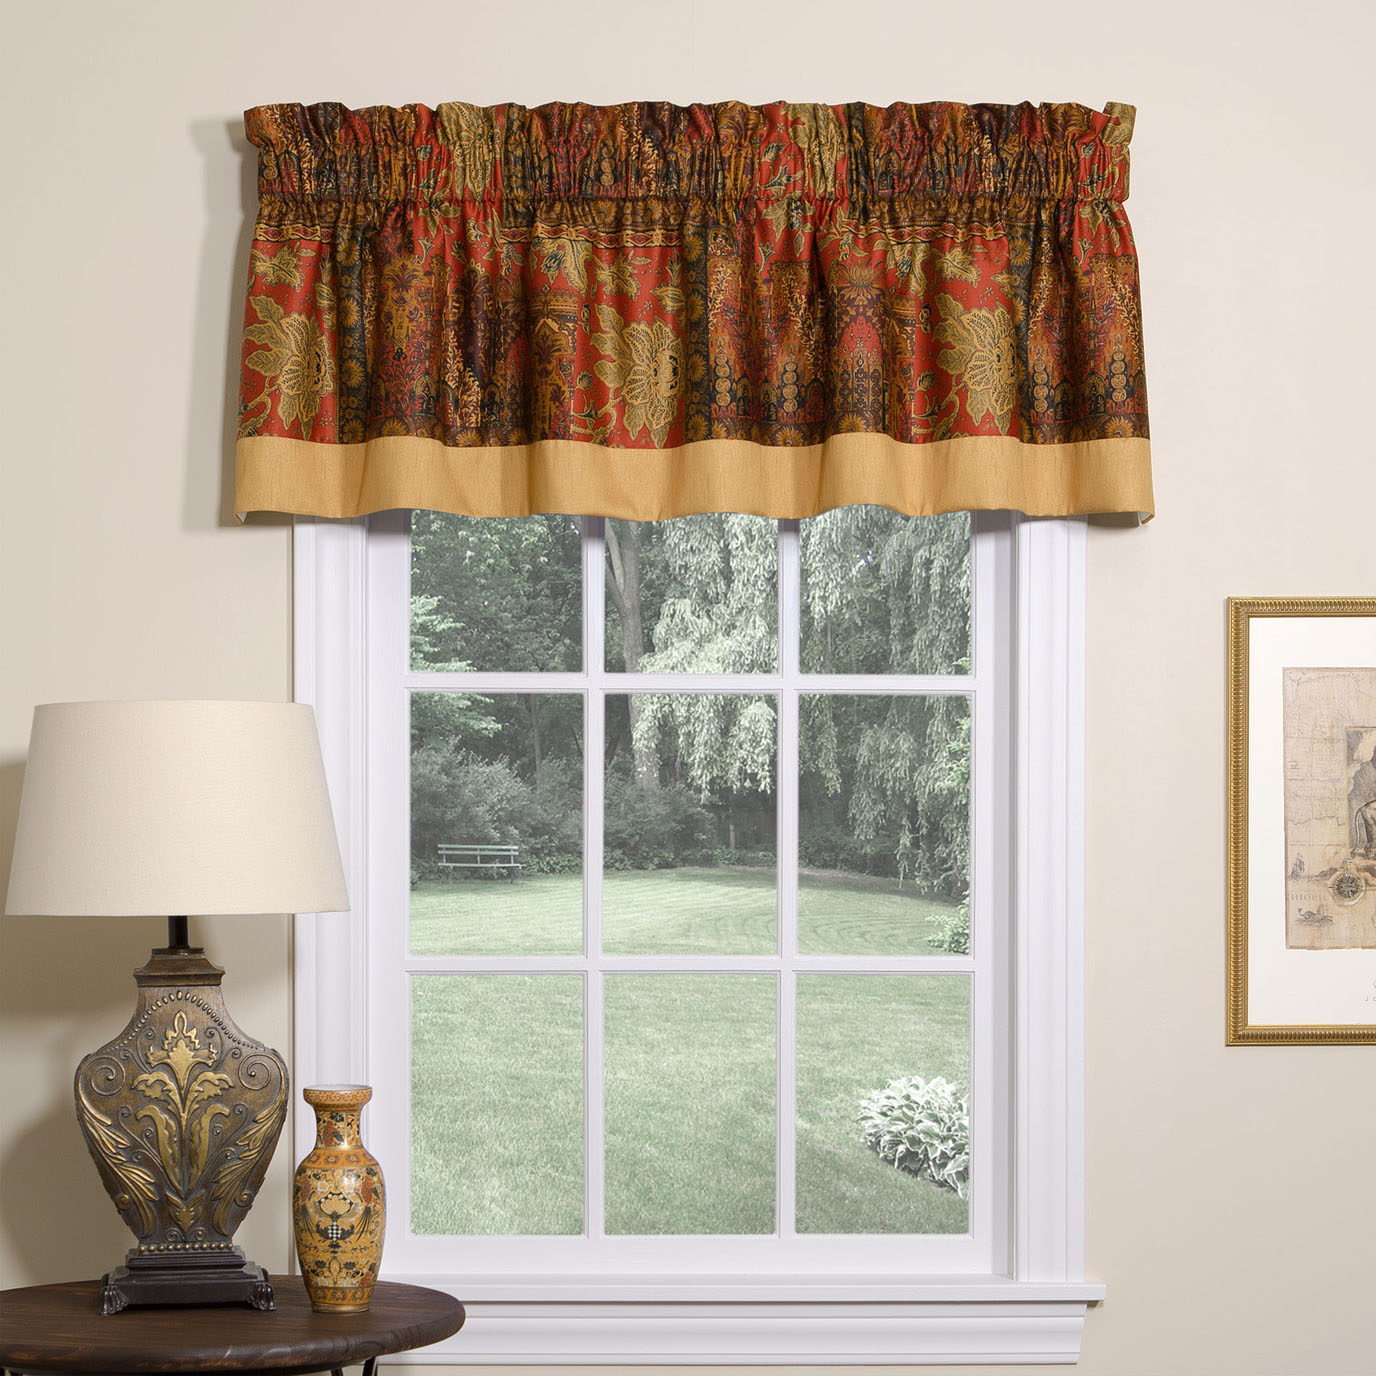 Kalinjar Tailored Valance with Band